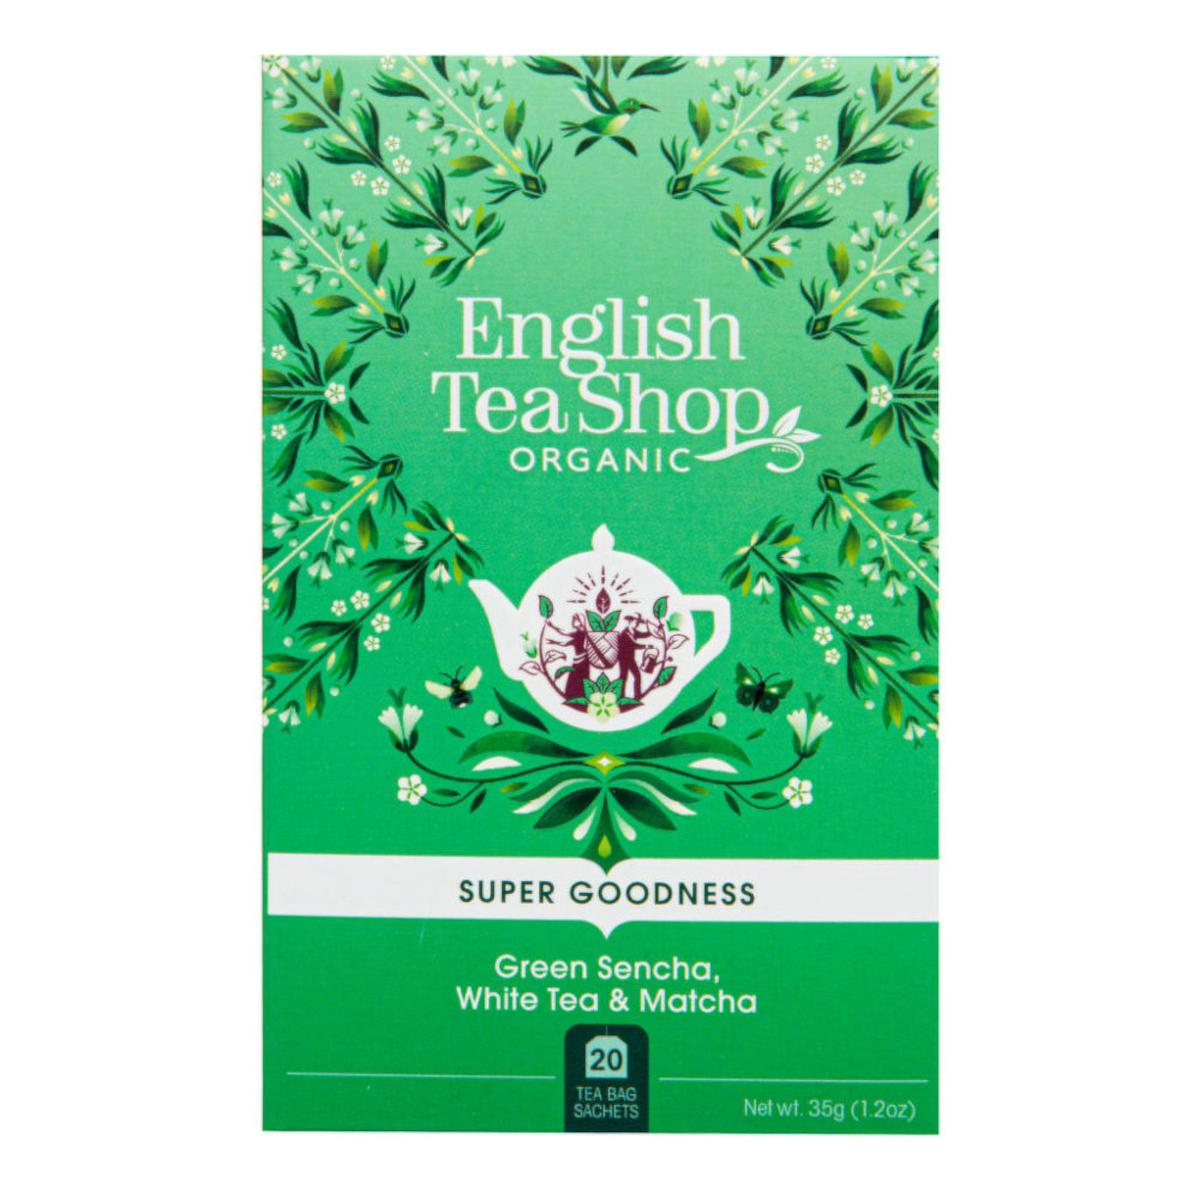 English Tea Shop Super Goodness, Zelená sencha, bílý čaj & matcha 35 g, 20 ks